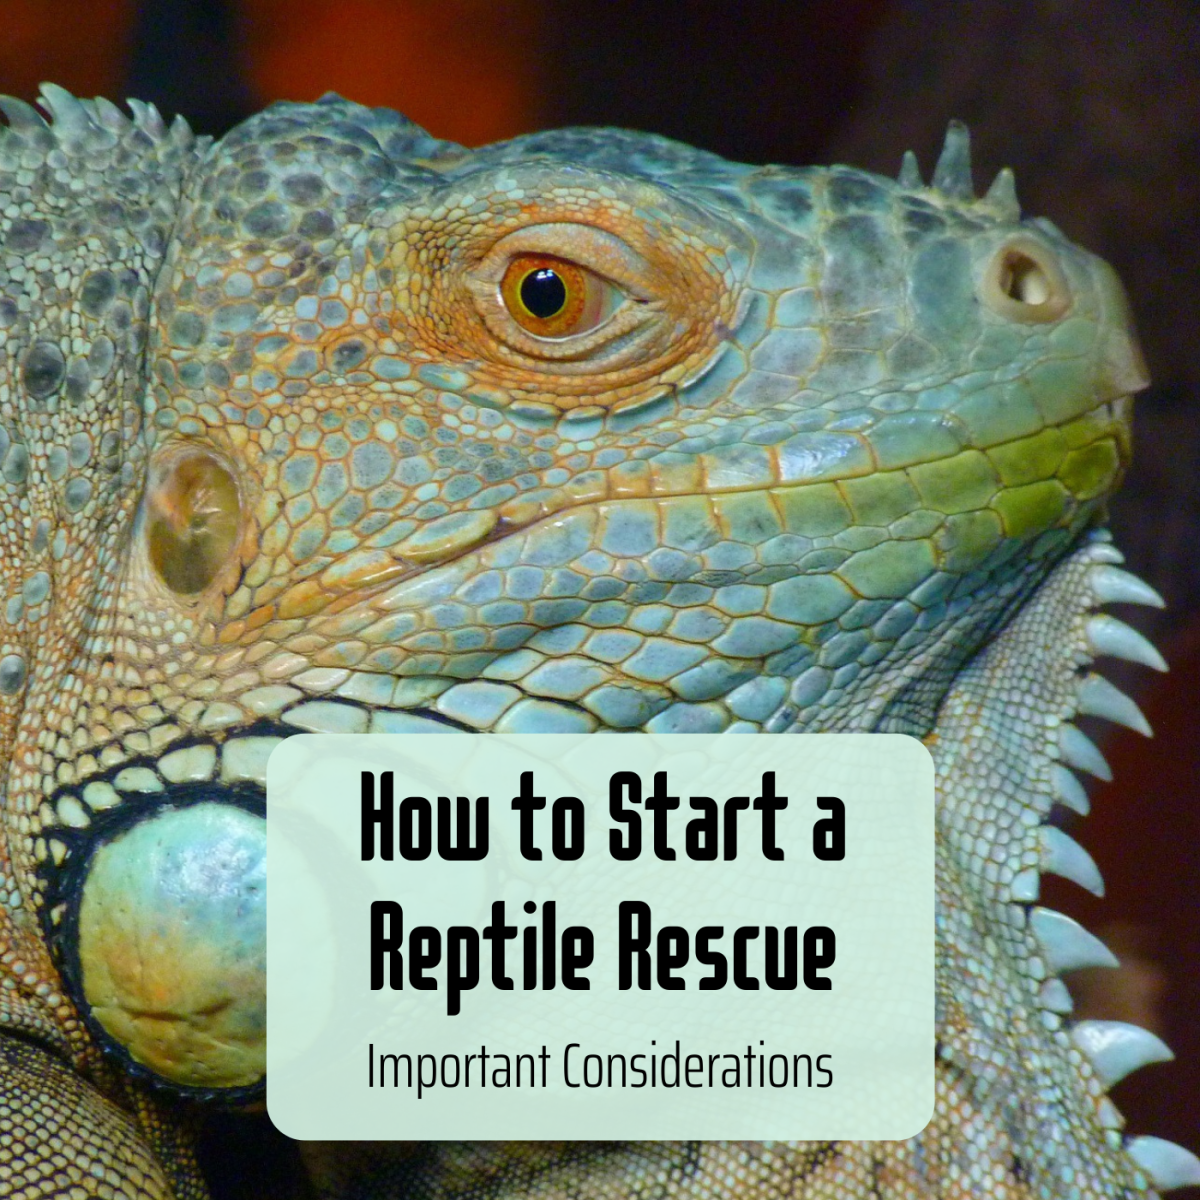 If your dream is to start a reptile rescue or sanctuary, there are some important questions to ask yourself first.